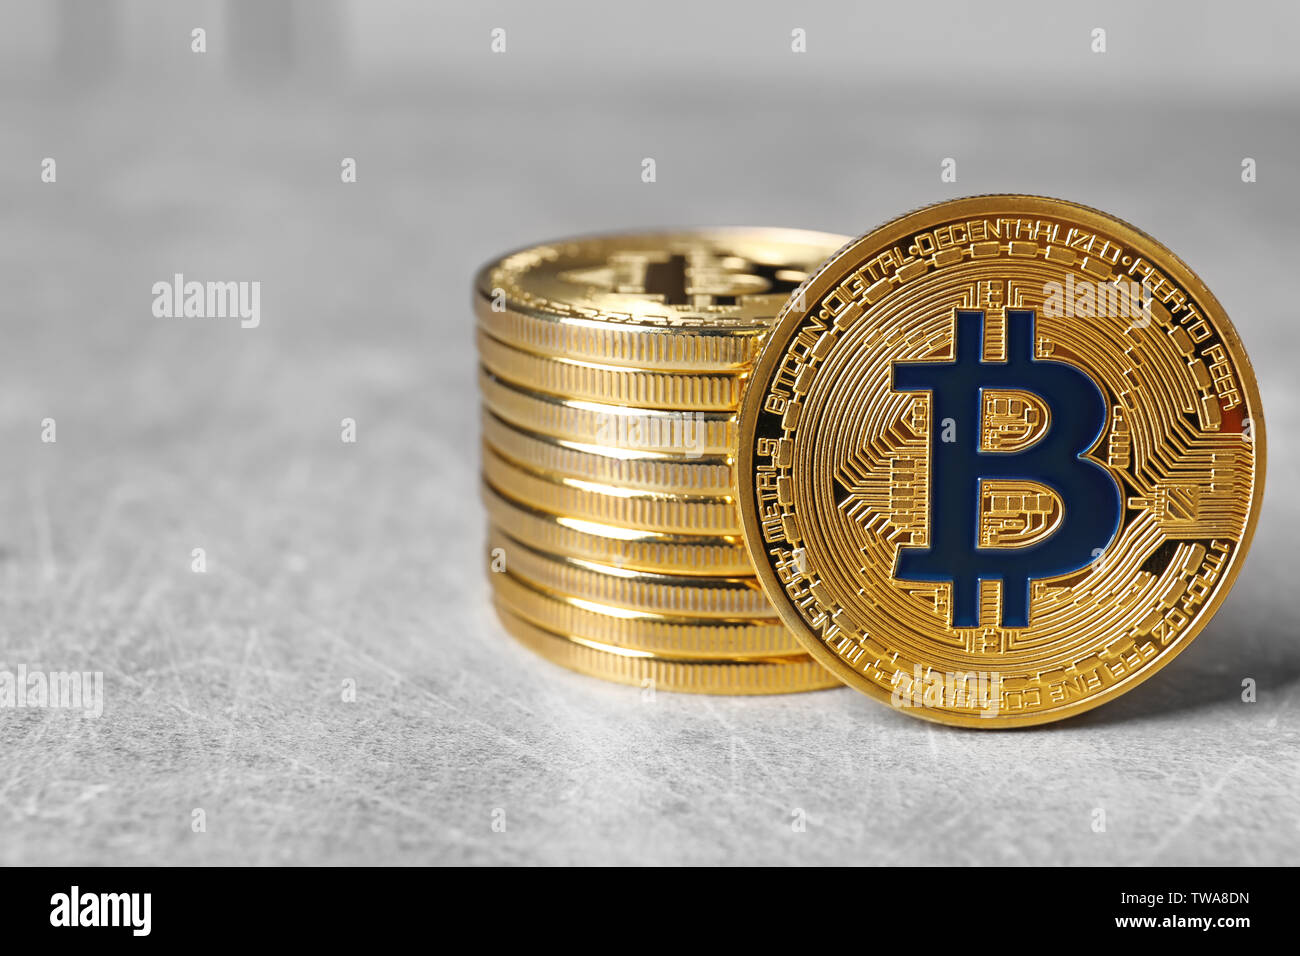 Golden bitcoins on light background. Finance trading - Stock Image